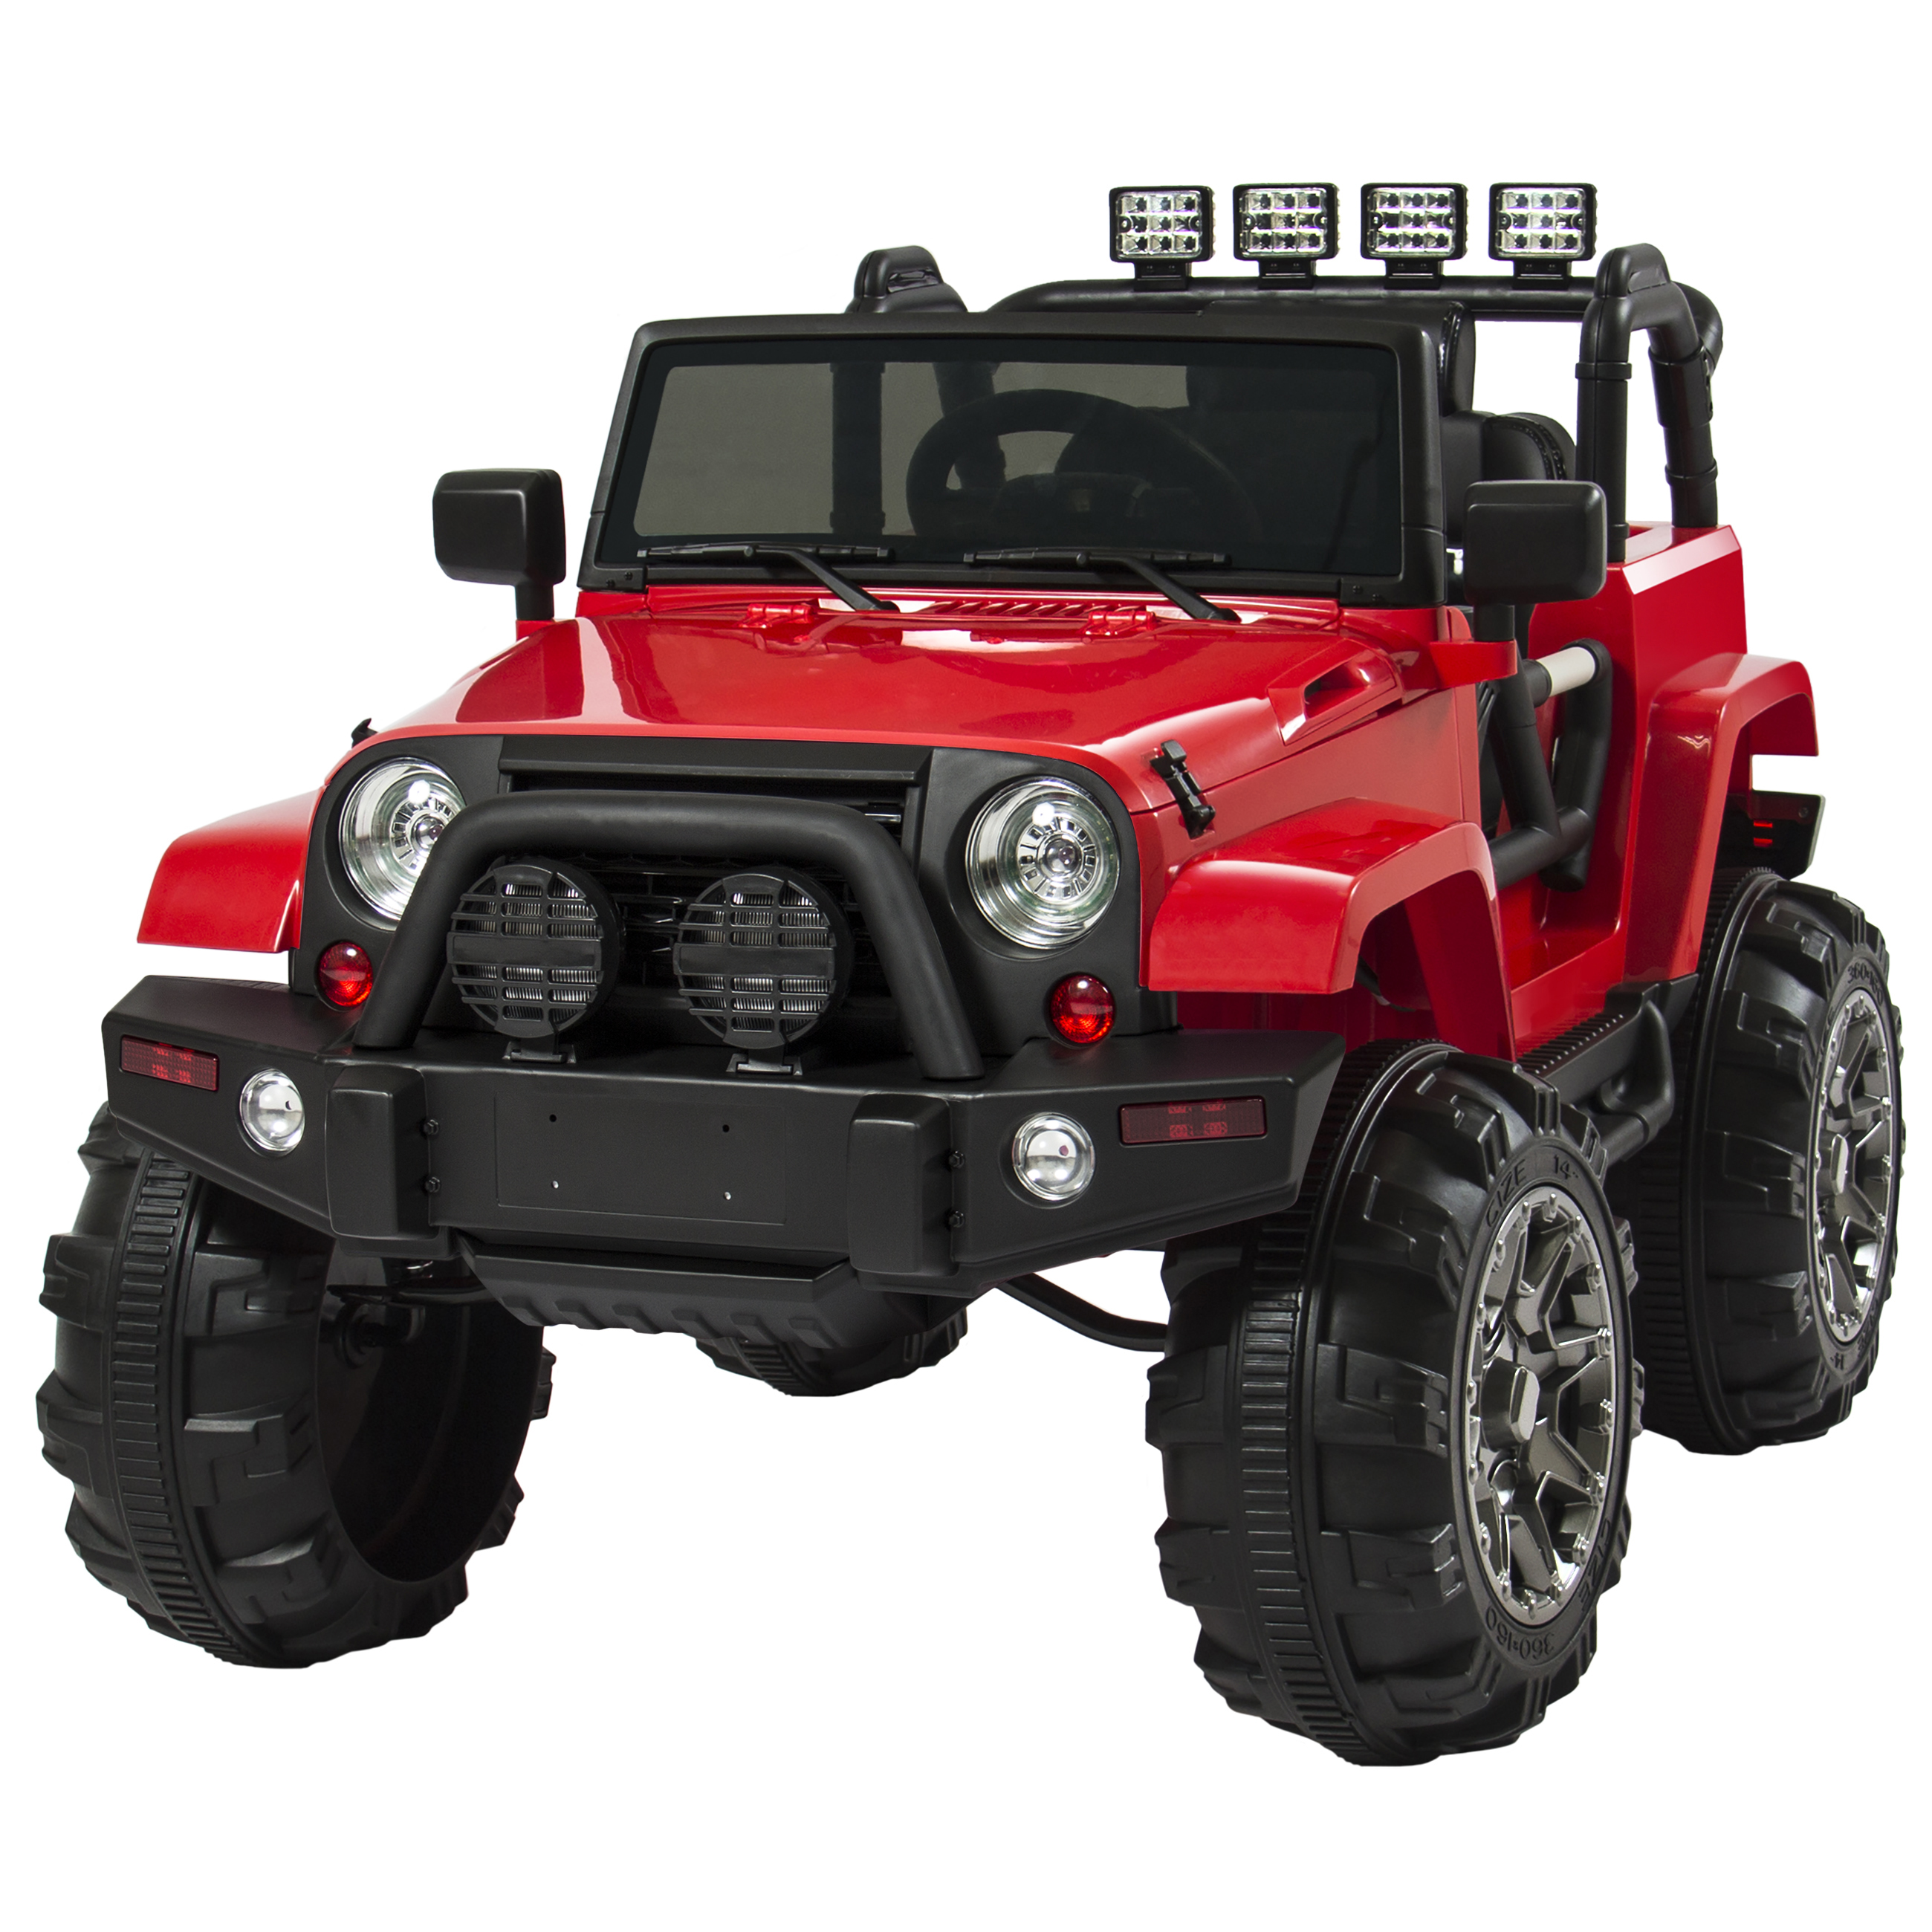 12V Ride On Car Truck W/ Remote Control, 3 Speeds, Spring Suspension, LED Lights, Red